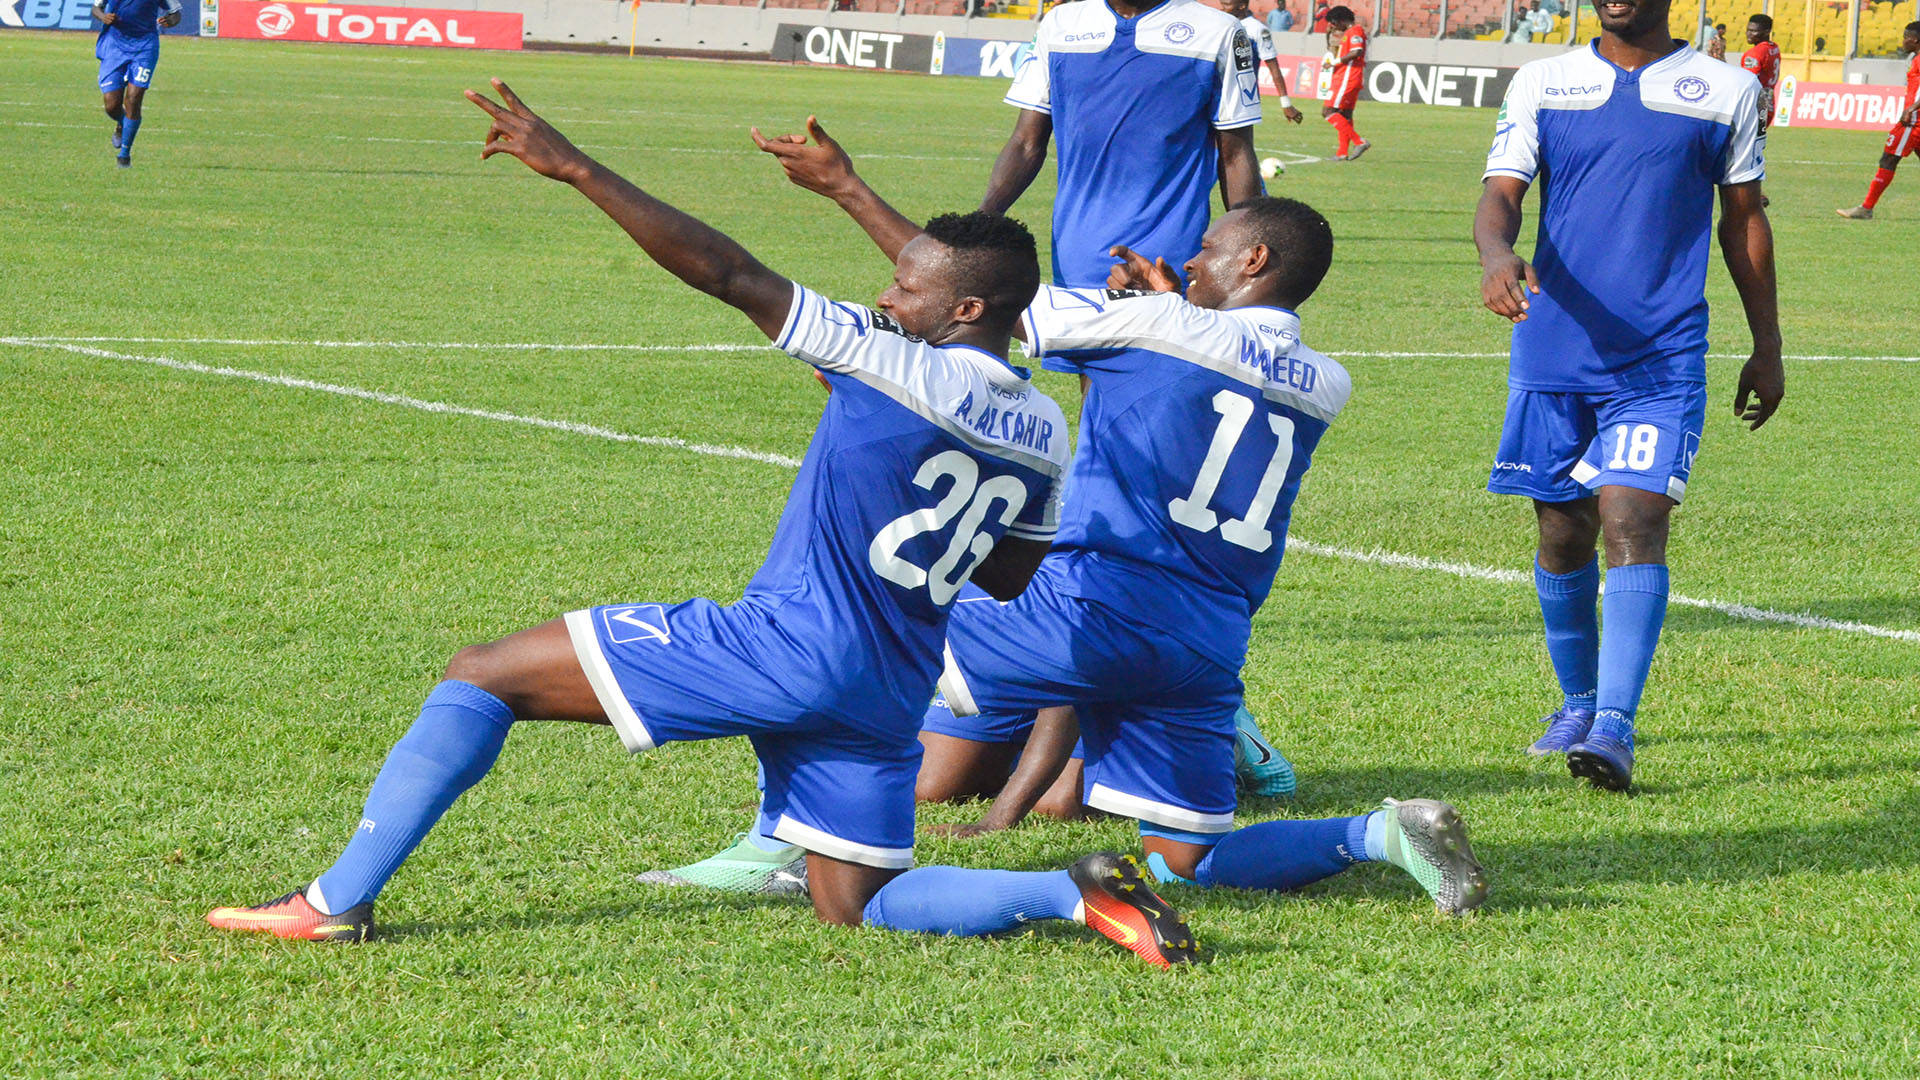 Caf Champions League: We are unlucky facing Enyimba early - Al Hilal chief